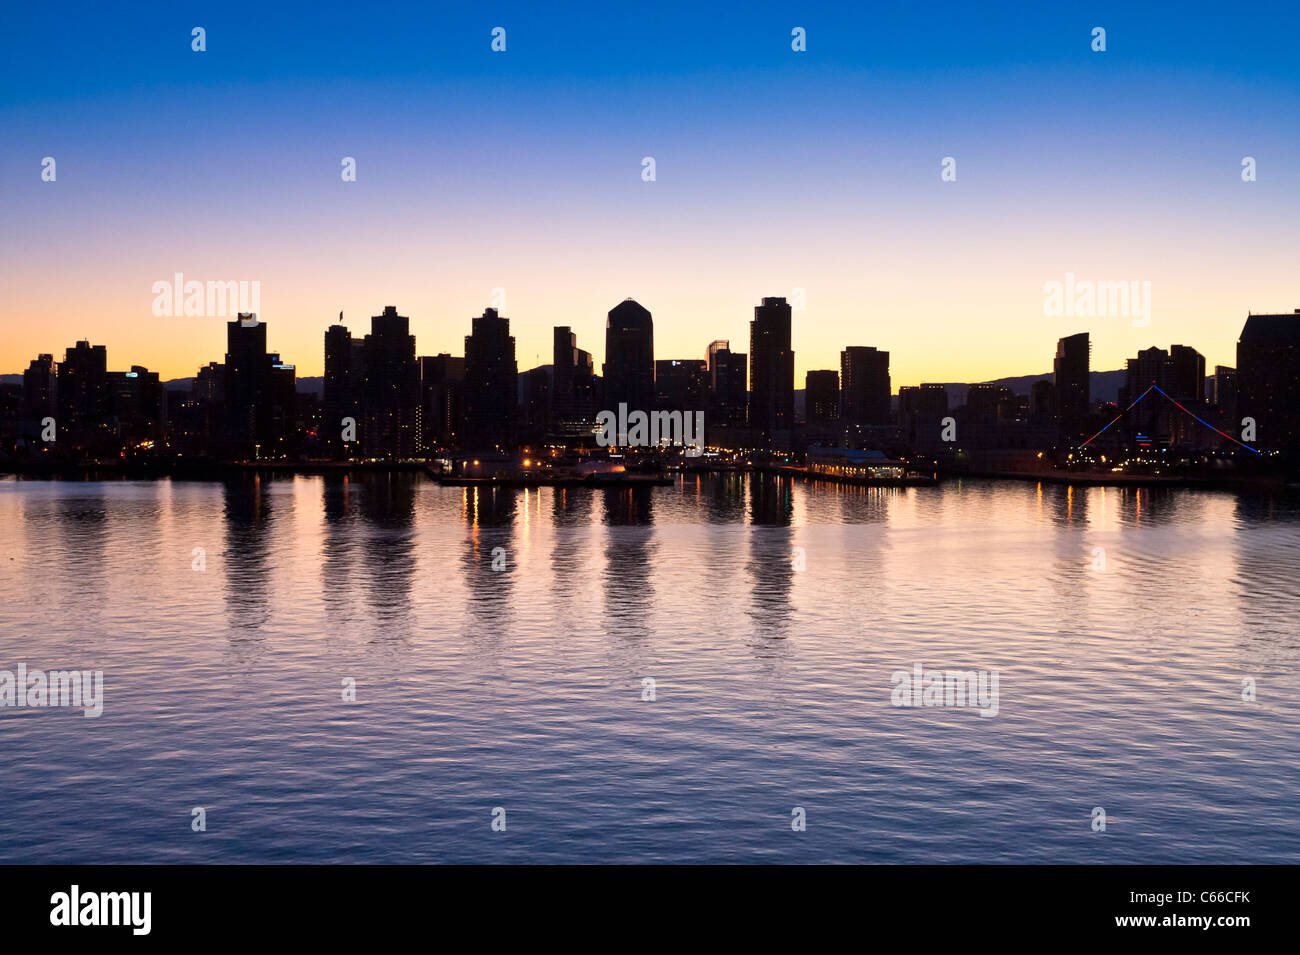 Th the largest city in california - San Diego Is The Eighth Largest City In The United States And Second Largest City In California